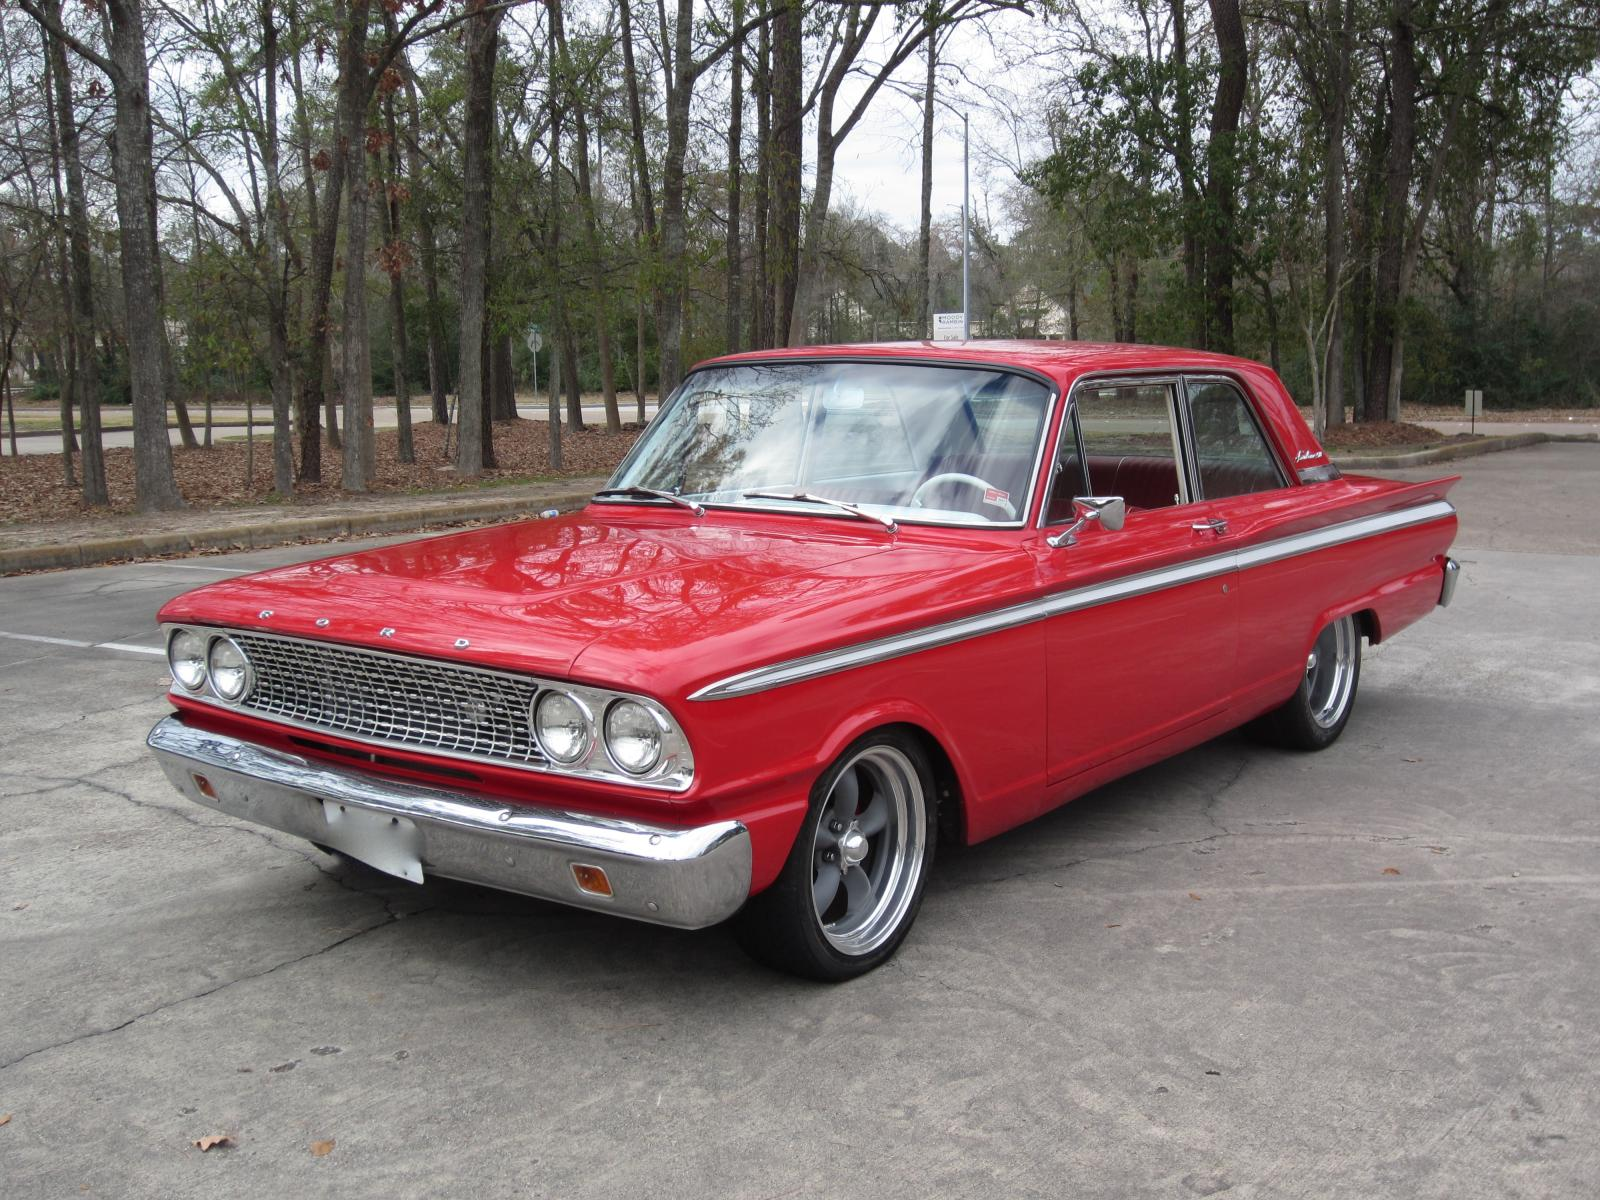 1963 Ford Fairlane 500 - For Sale 25K